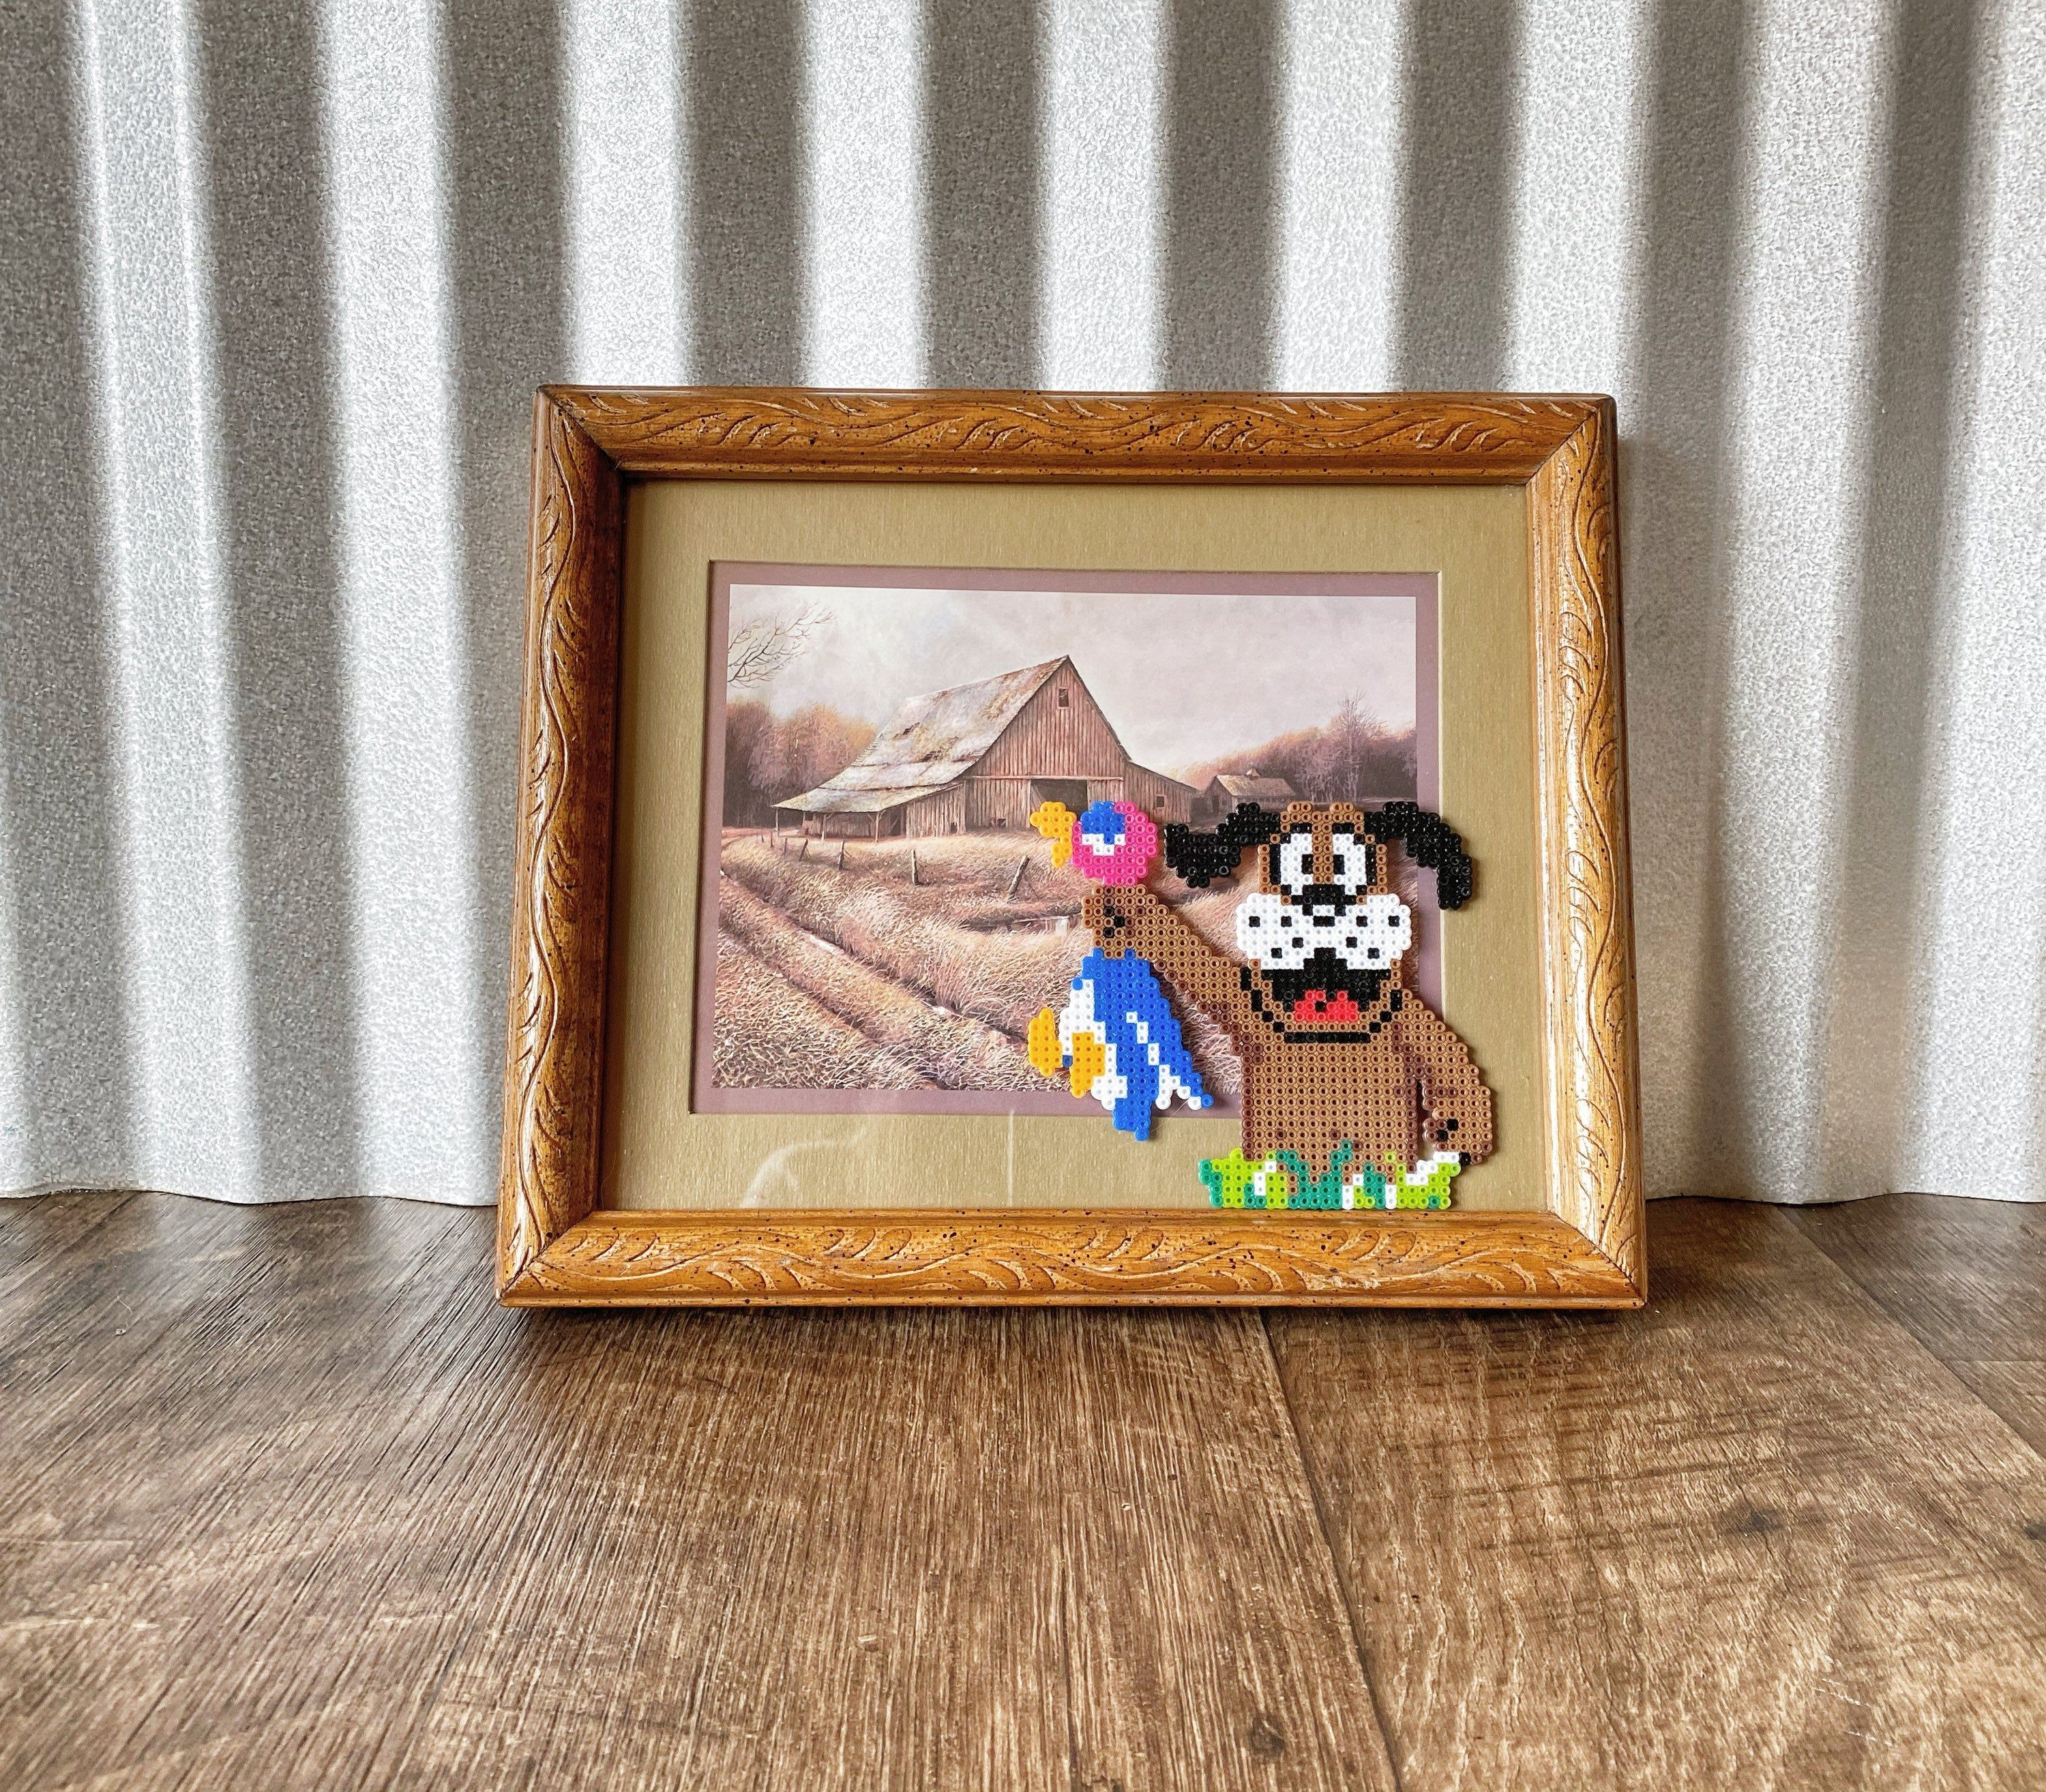 Pin On Retro Video Games And Stuff Duck hunting bathroom decor